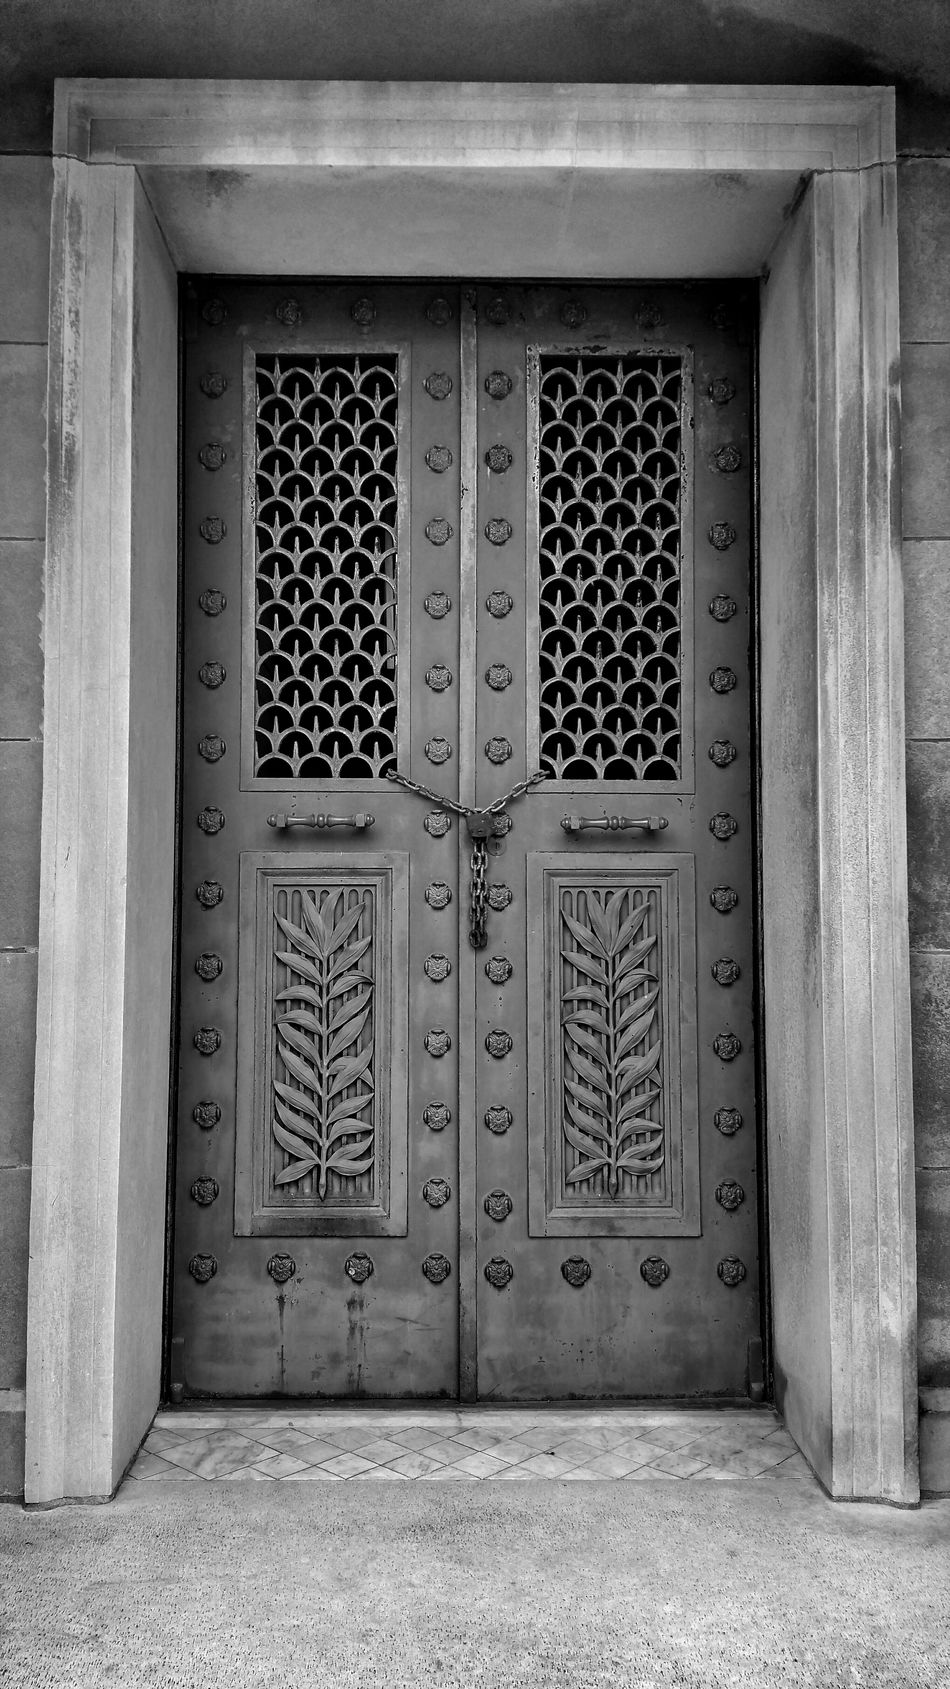 Rest In Peace Taking Photos Paying My Respects Eternal Peace Locked Out... Relaxing Black And White Photography Doorway Standing In Front Of Closed Doors